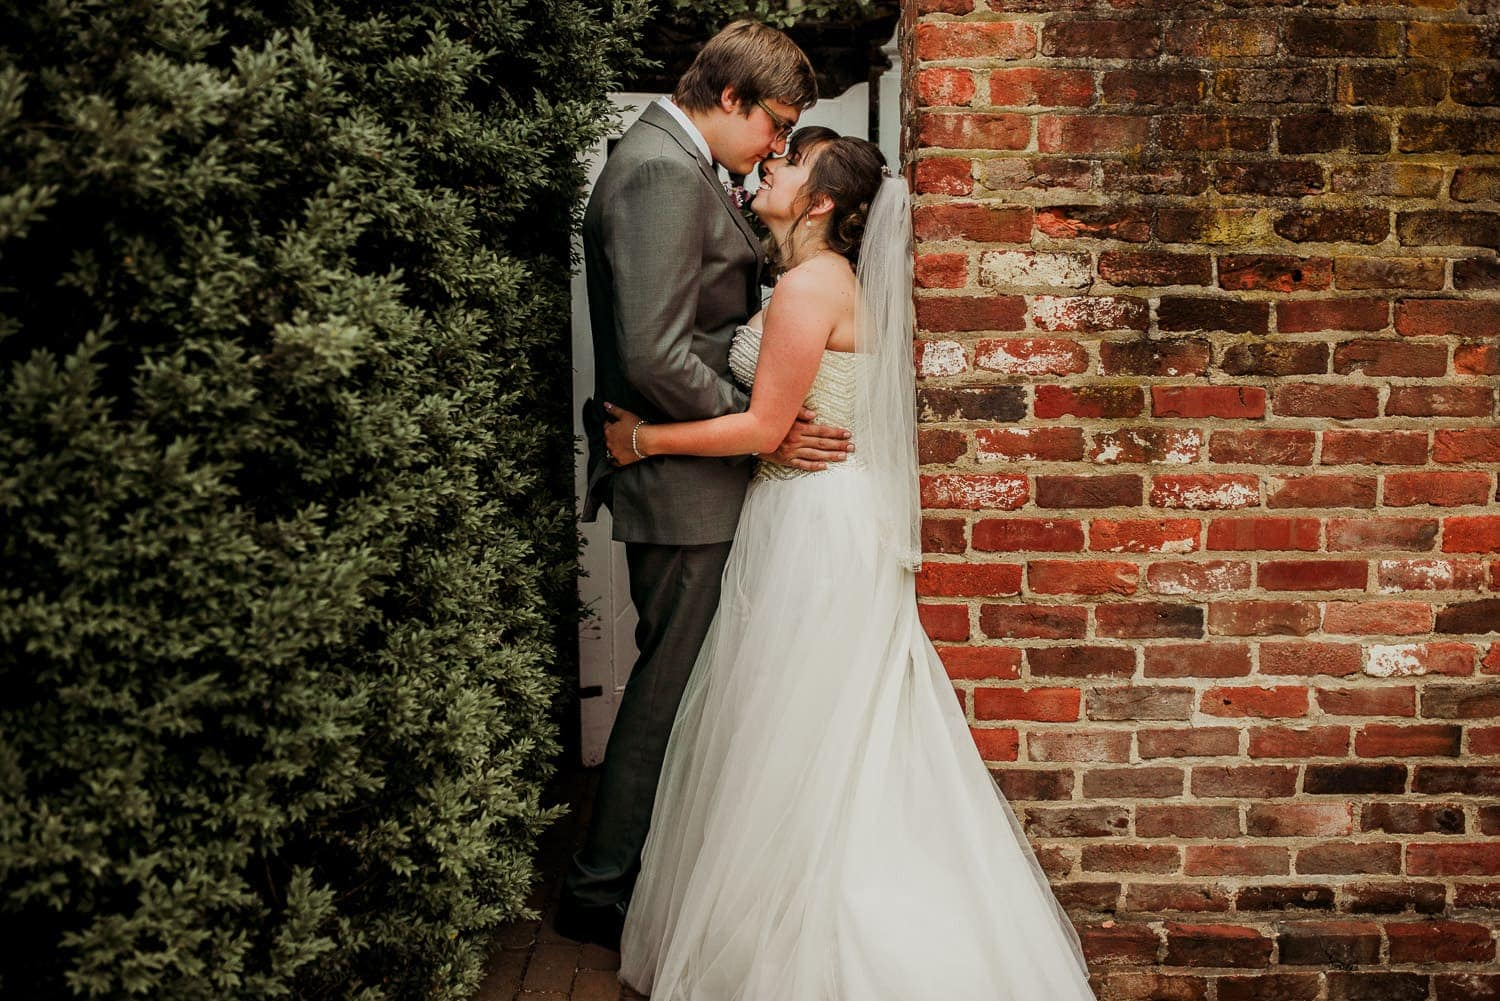 The bride and groom are holding each other close as they stand in a doorway.